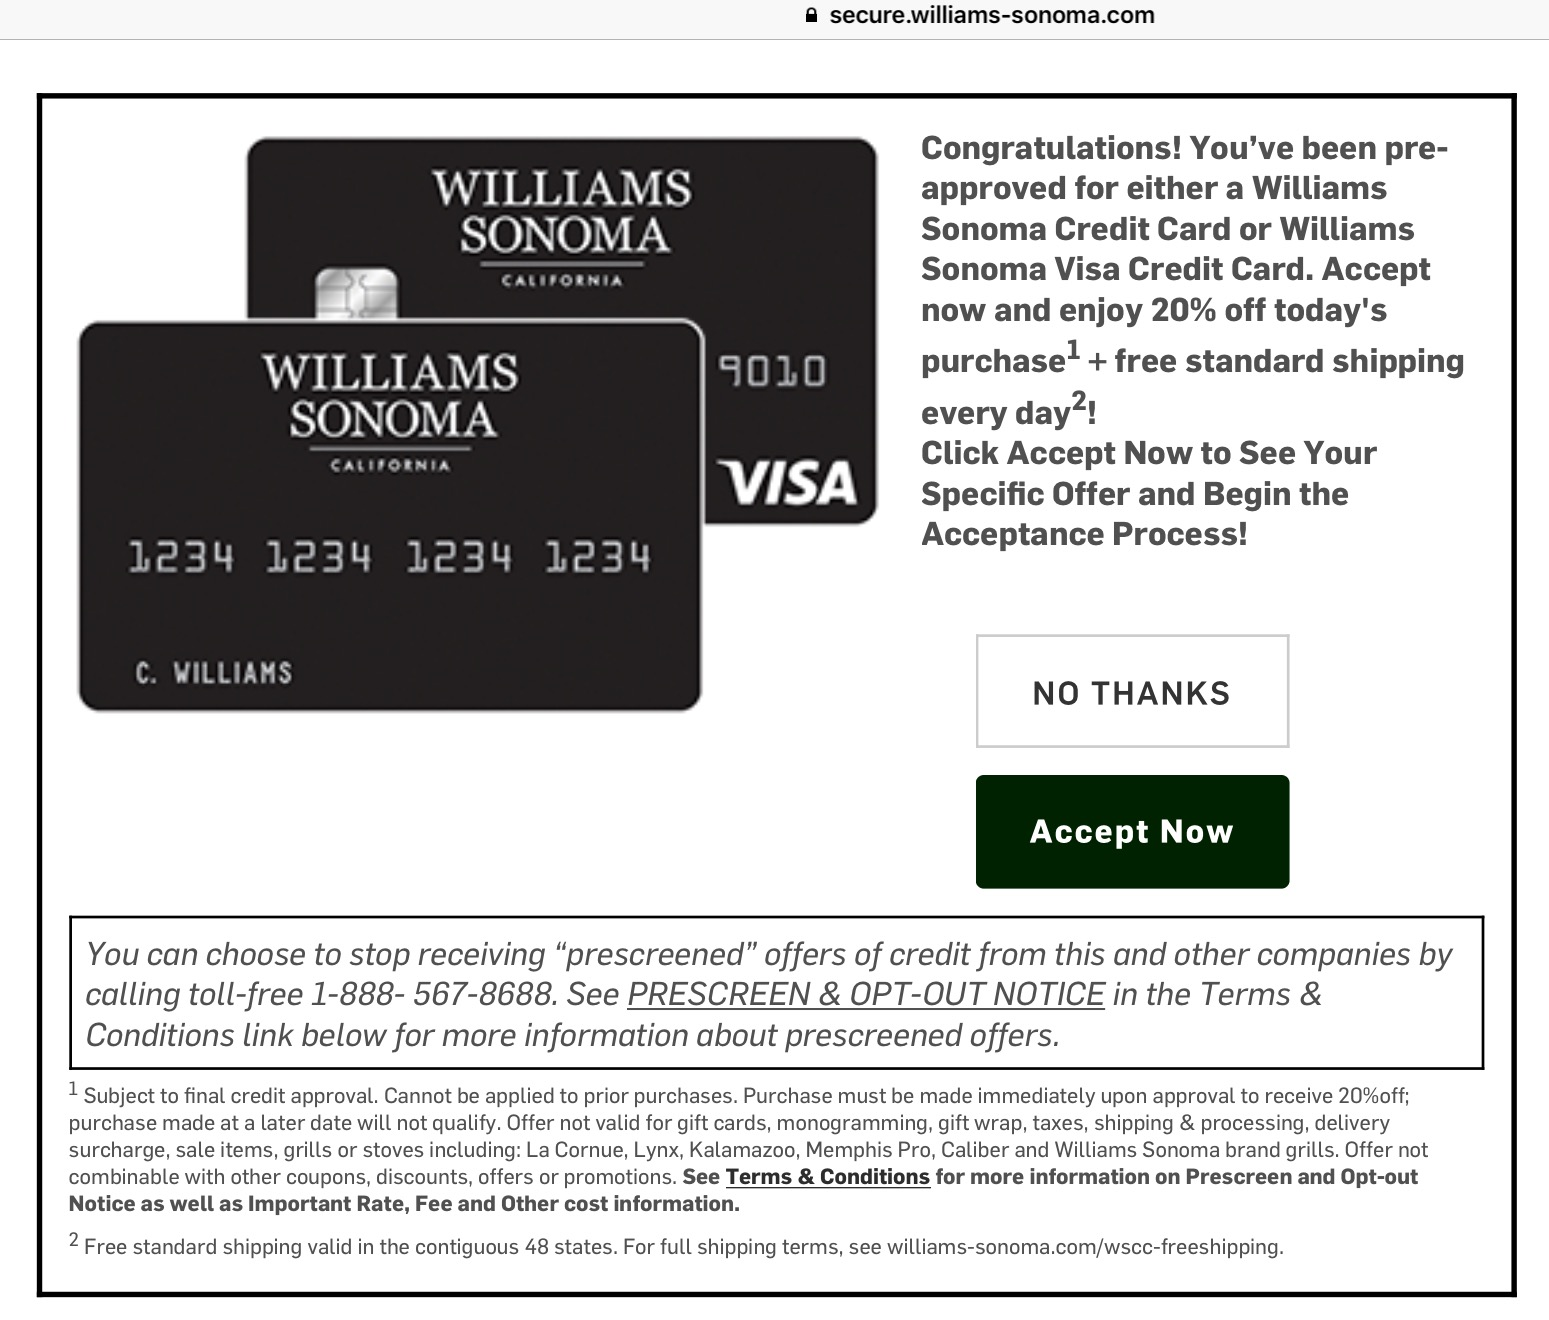 Williams-Sonoma Visa Card From Comenity Bank Review – 5% Back In June we let you know that Barclaycard & Williams Sonoma would be discontinuing their relationship, Comenity Bank has purchased the card portfolio and will be issuing the new card.